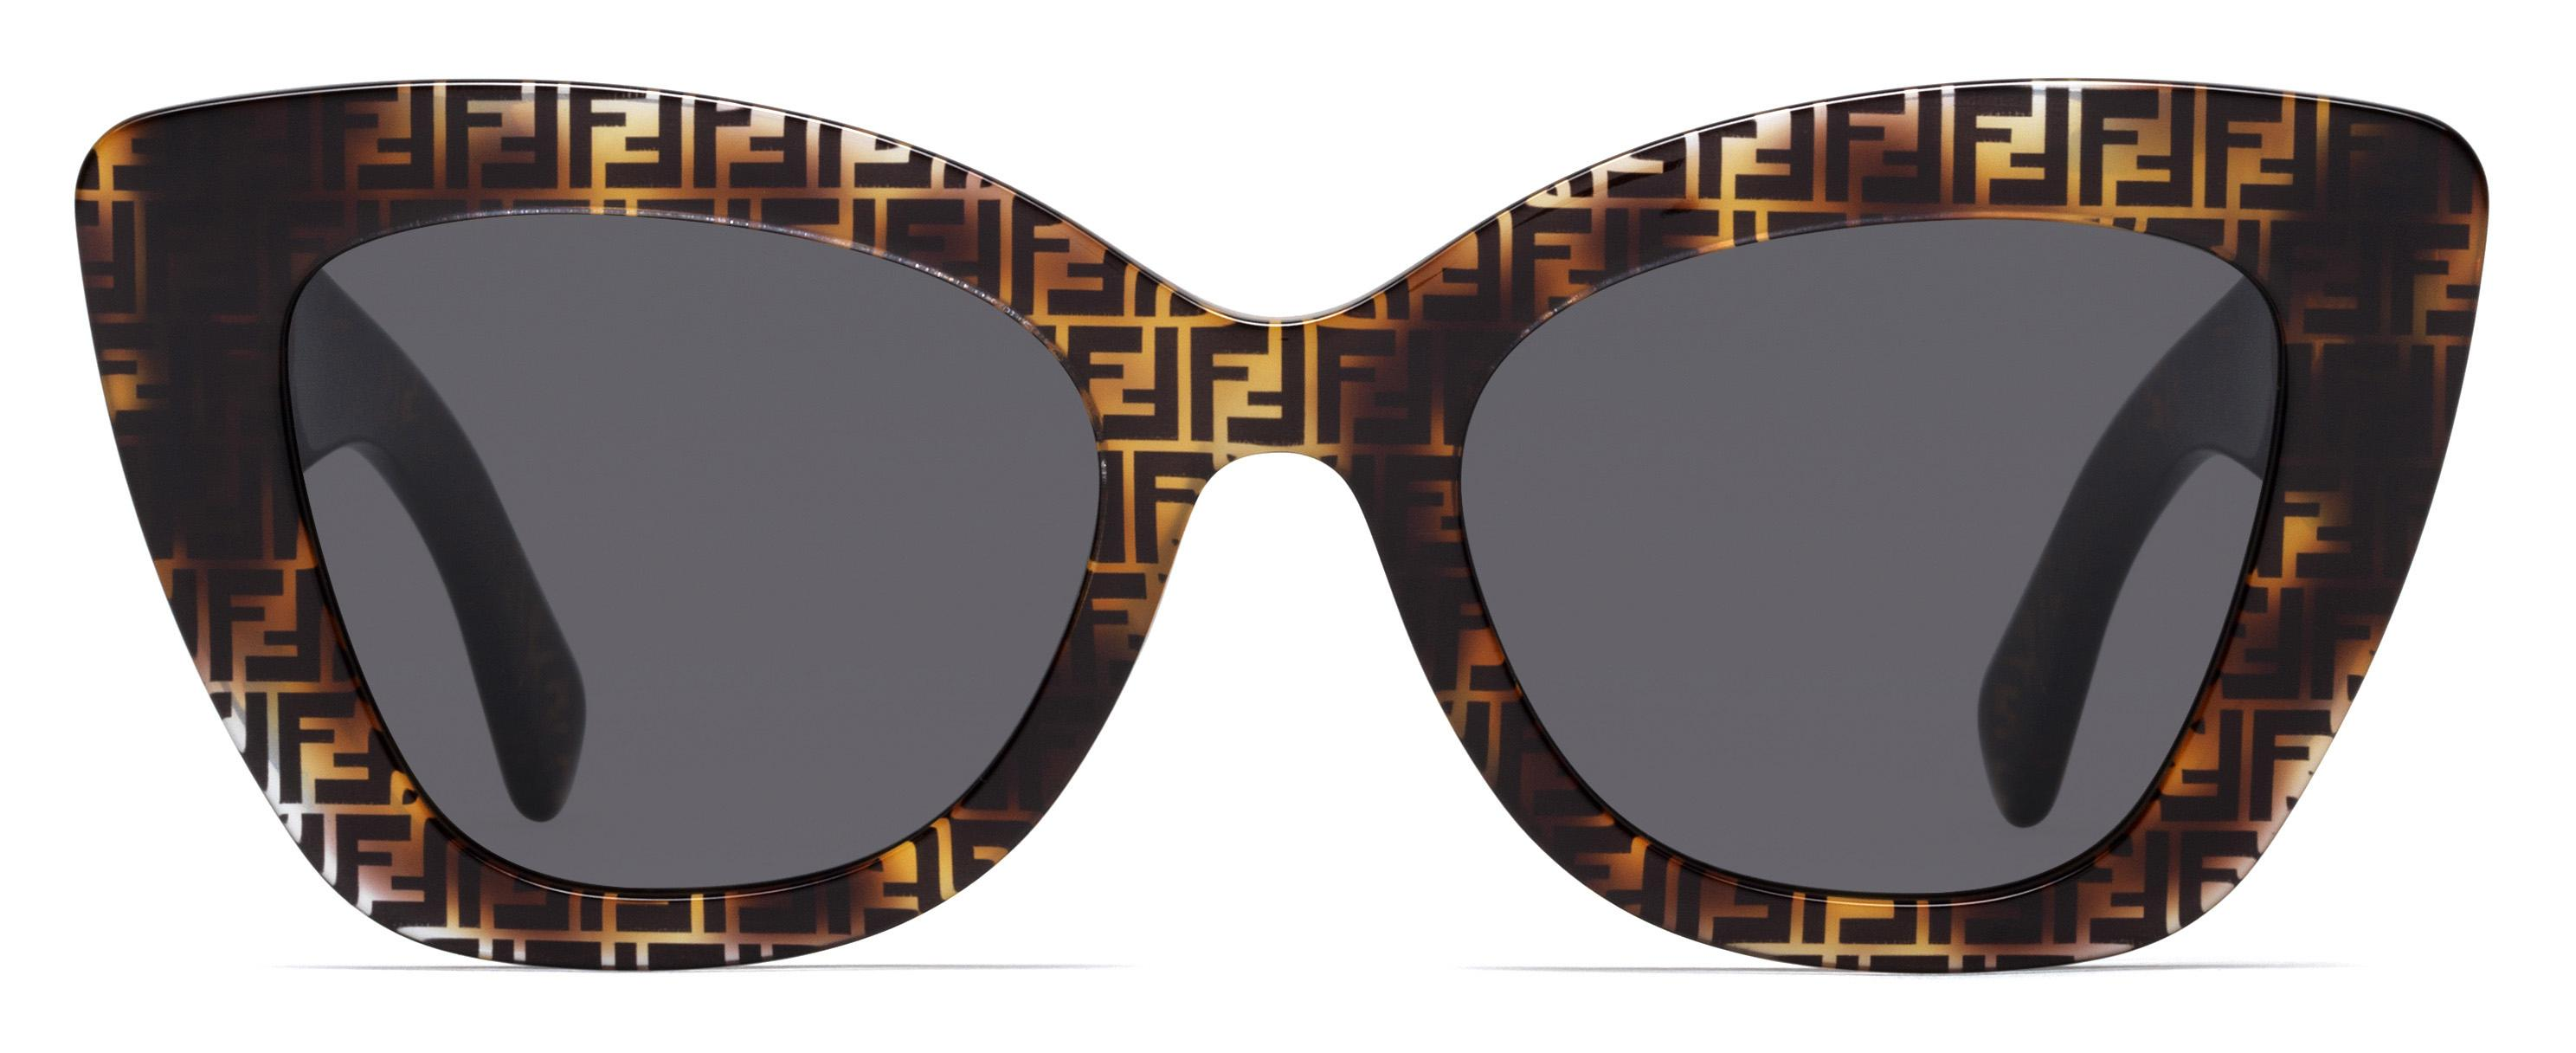 18072fdc32c Lyst - Fendi 0327 Cat Eye Sunglasses in Brown